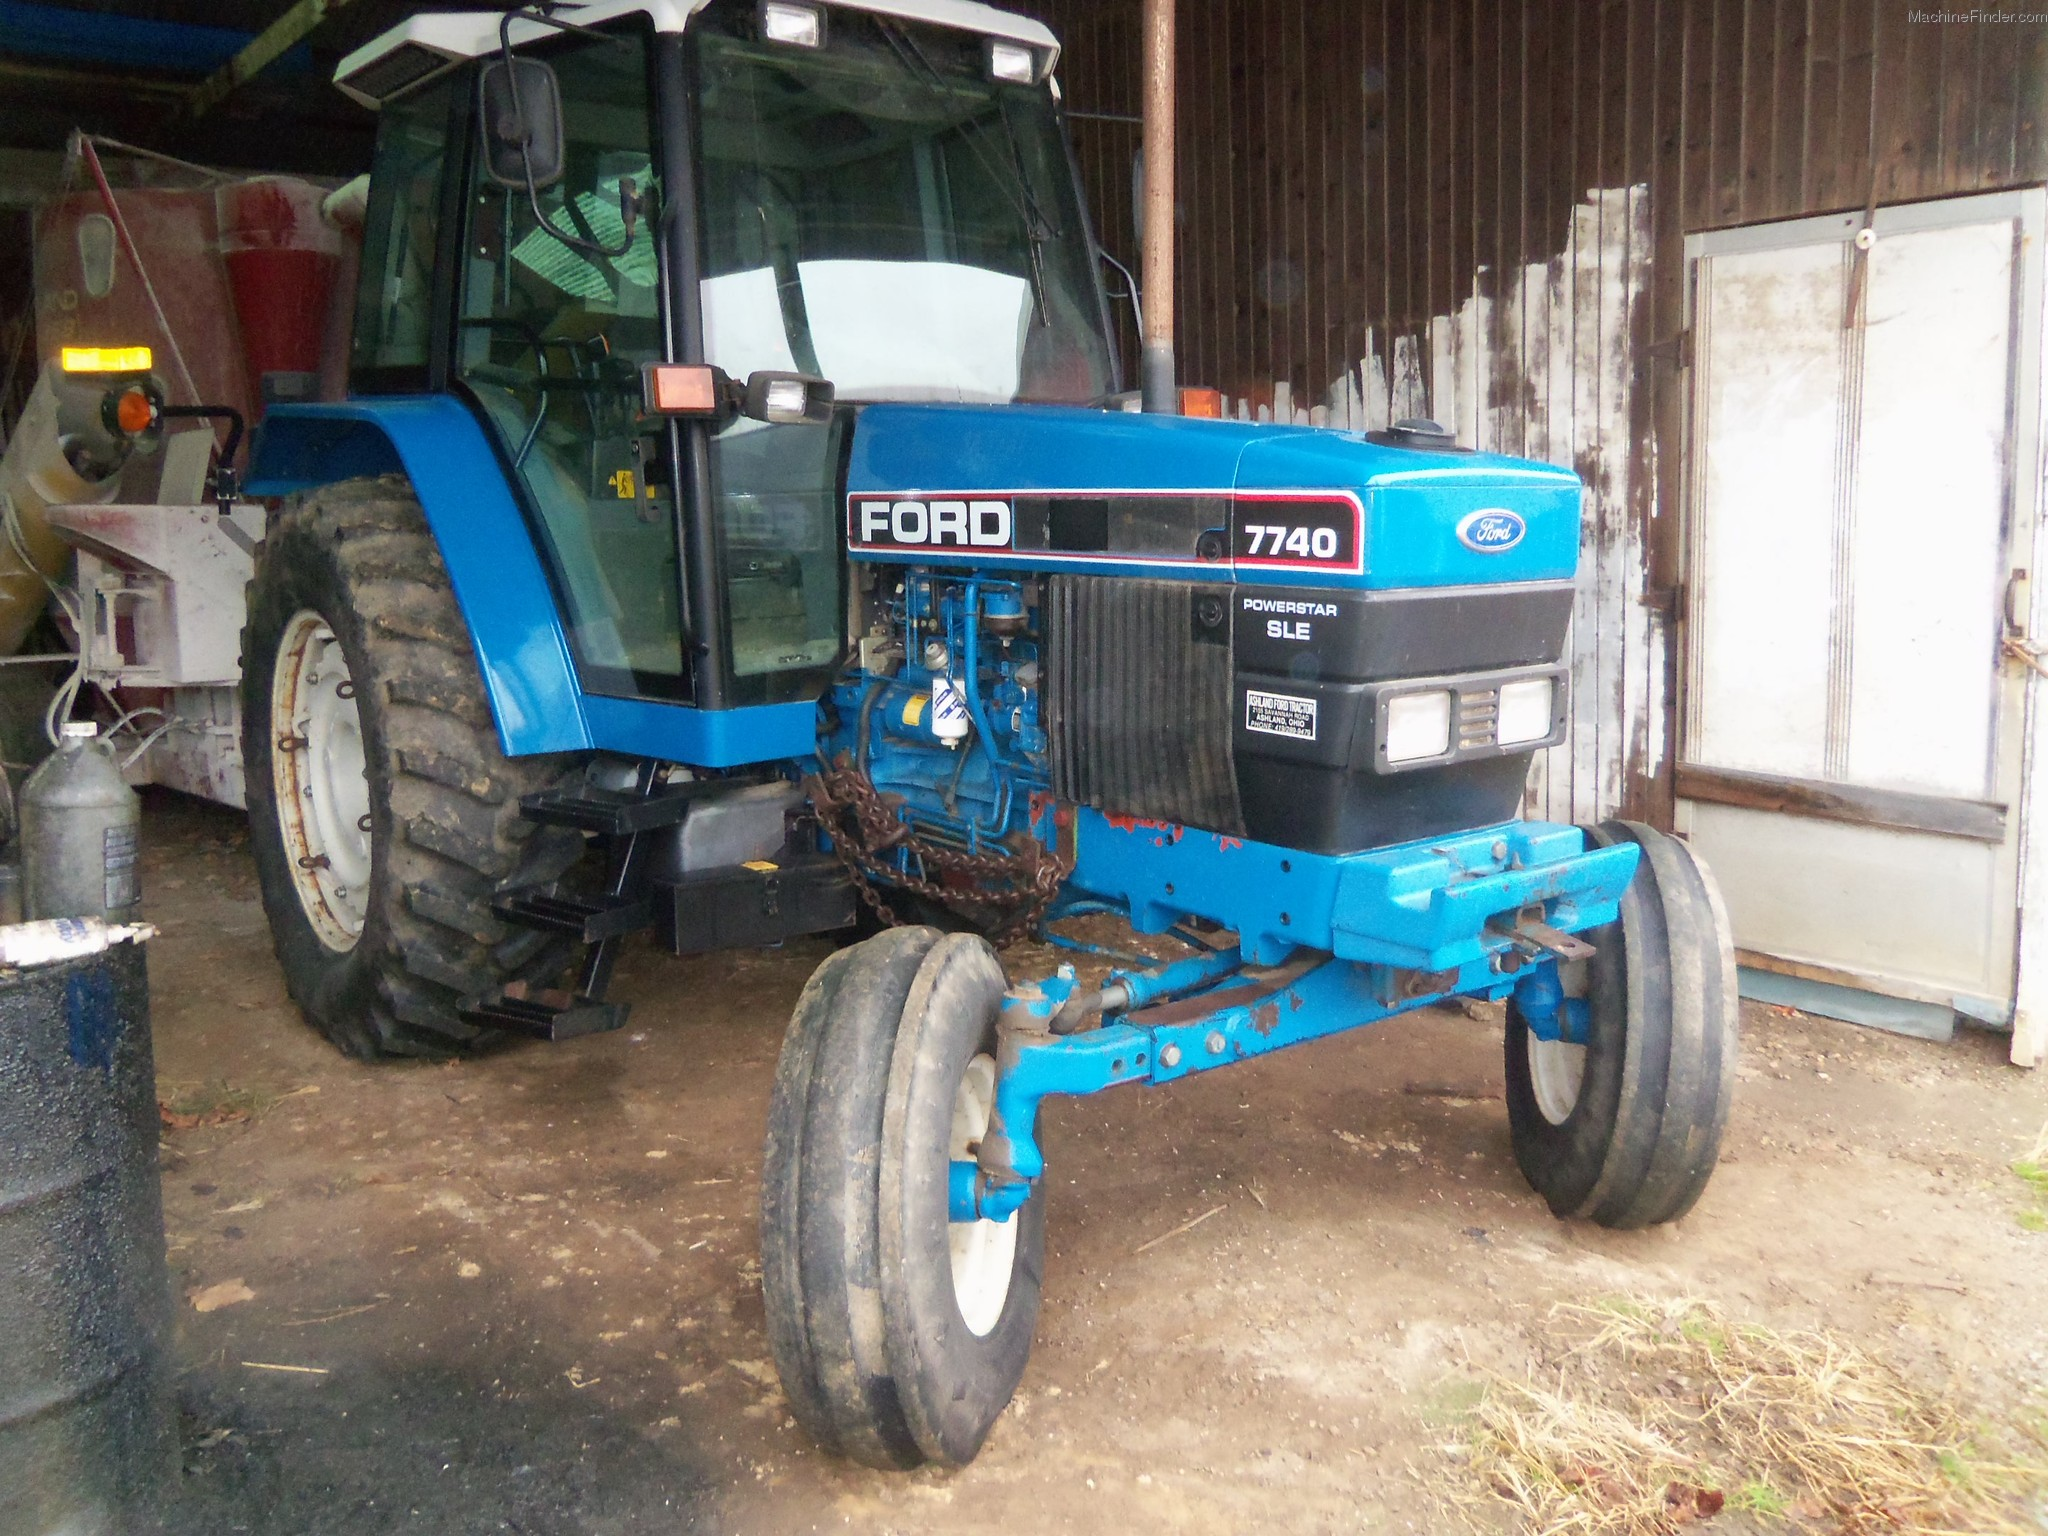 Ford Row Crop Tractors : Ford sle tractors row crop hp john